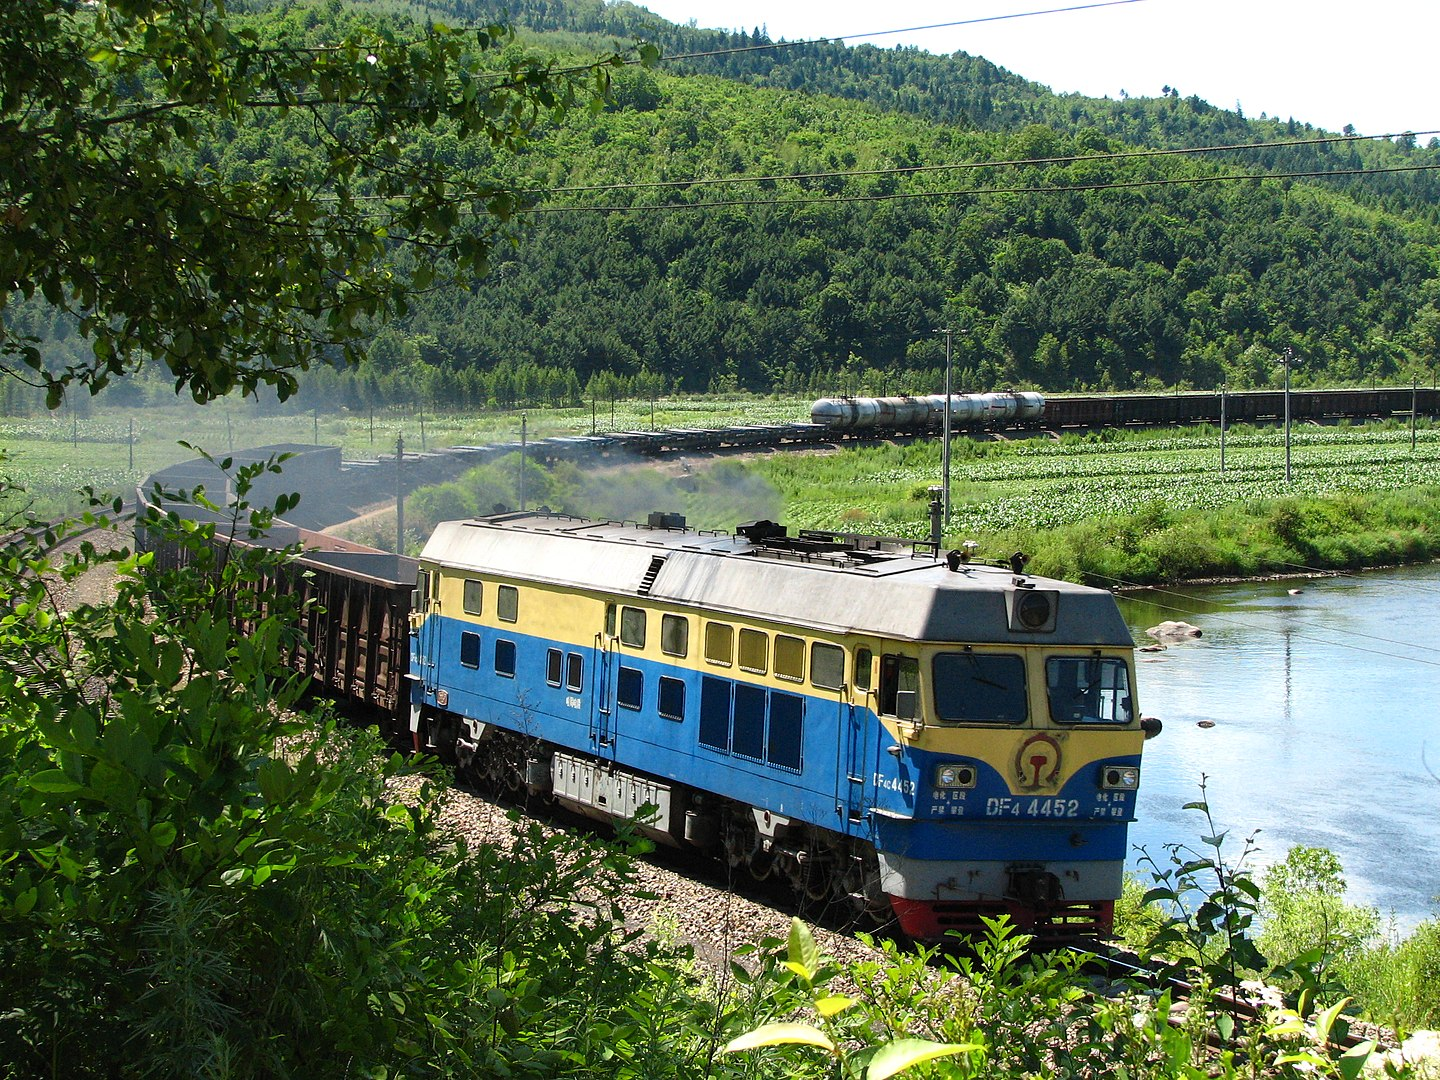 <p>A freight train in Heilongjiang, China. Photo by Xue Siyang/Wikimedia Commons</p>